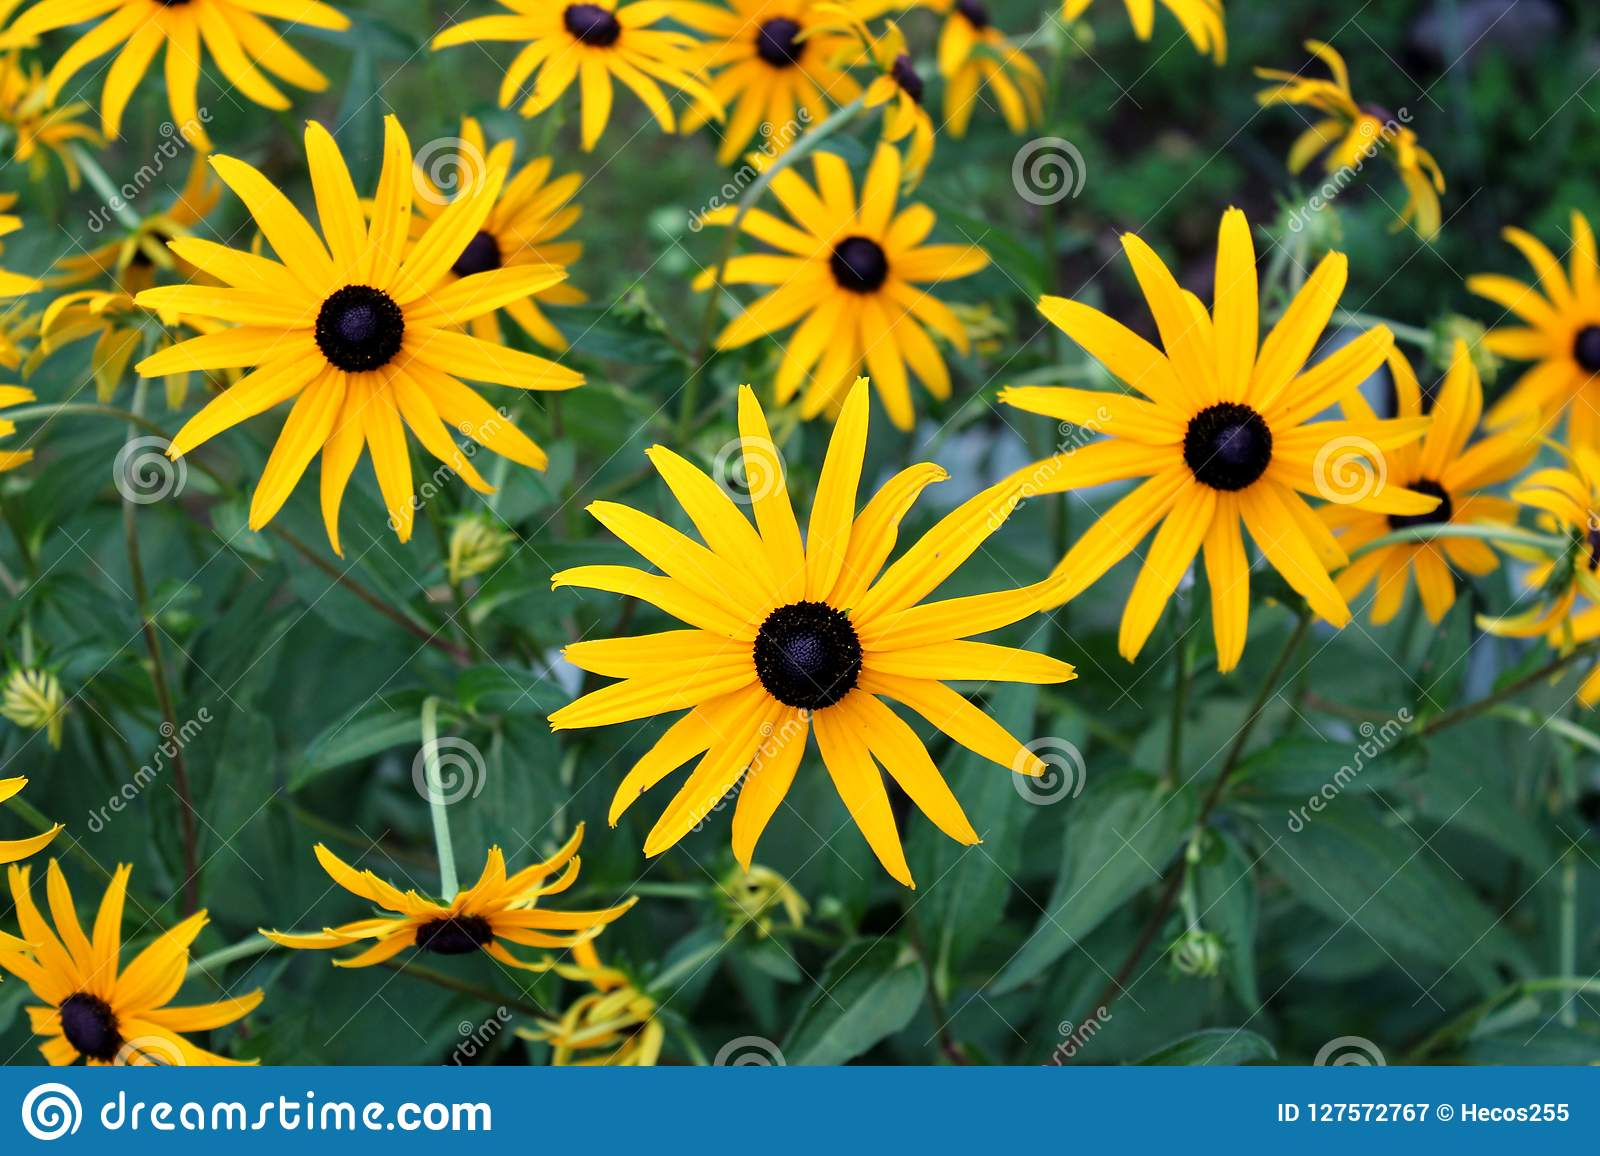 Black Eyed Susan Or Rudbeckia Hirta Fully Open And Blooming Bright Yellow Flowers With Black Center Planted In Local Garden Stock Image Image Of Land Center 127572767 A wide variety of daisy brown options are available to you, such my alibaba message center manage rfq my orders my account. https www dreamstime com black eyed susan rudbeckia hirta fully open blooming bright yellow flowers center planted local garden brown betty image127572767